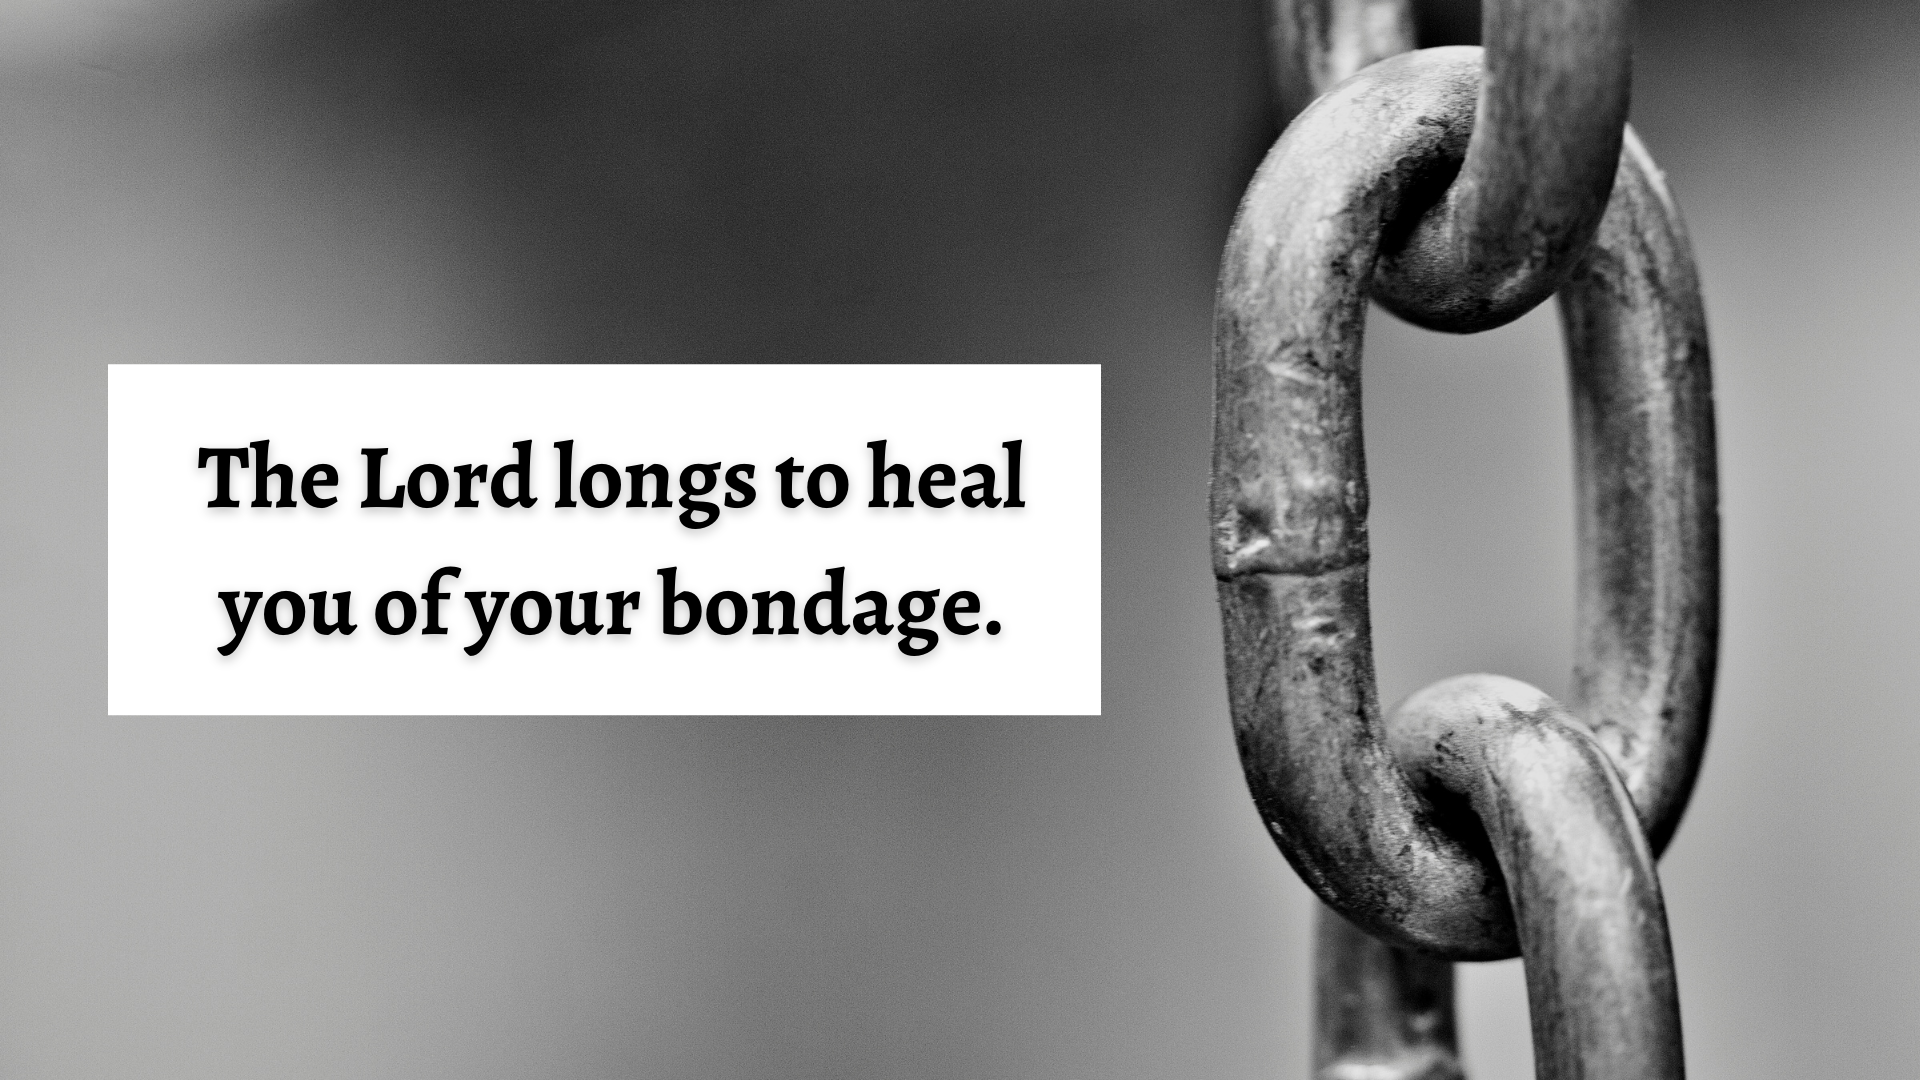 The Lord longs to heal you from bondage.